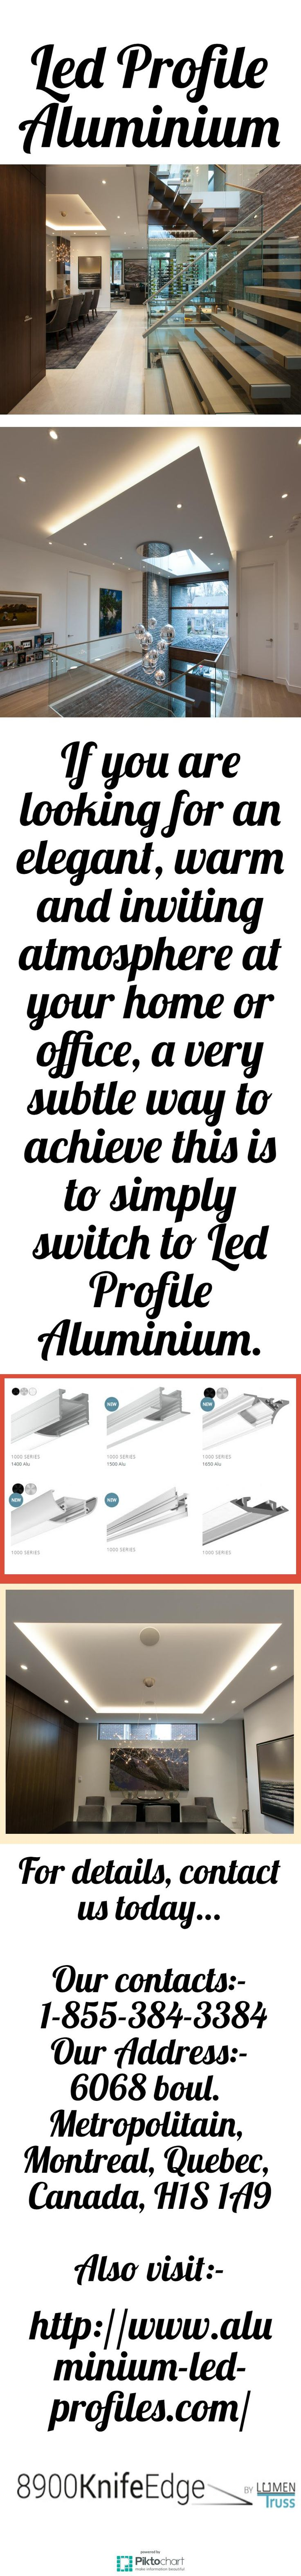 If you are looking to save money on electricity, the use of Led Profile Aluminium is another big win. These Led Profile Aluminium produce better and bright light than the traditional bulbs while using far less energy to do so. Visit link, for details.  http://www.aluminium-led-profiles.com/